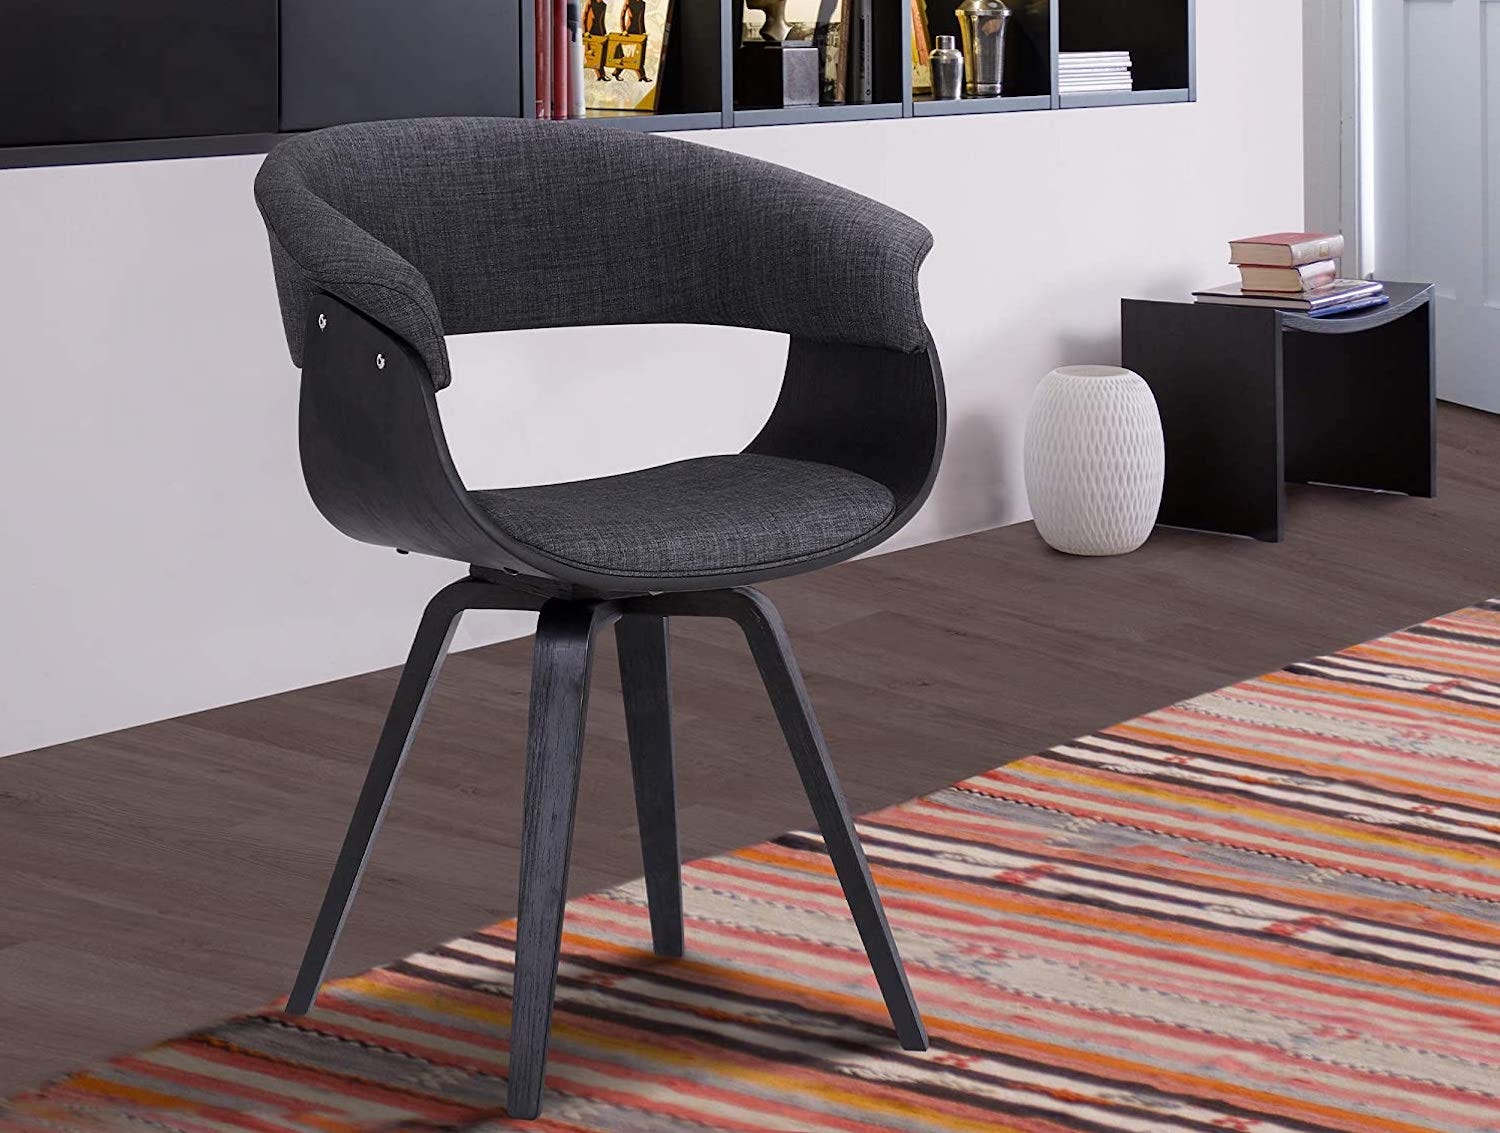 A dark gray bucket-shaped chair with a cutout in the back